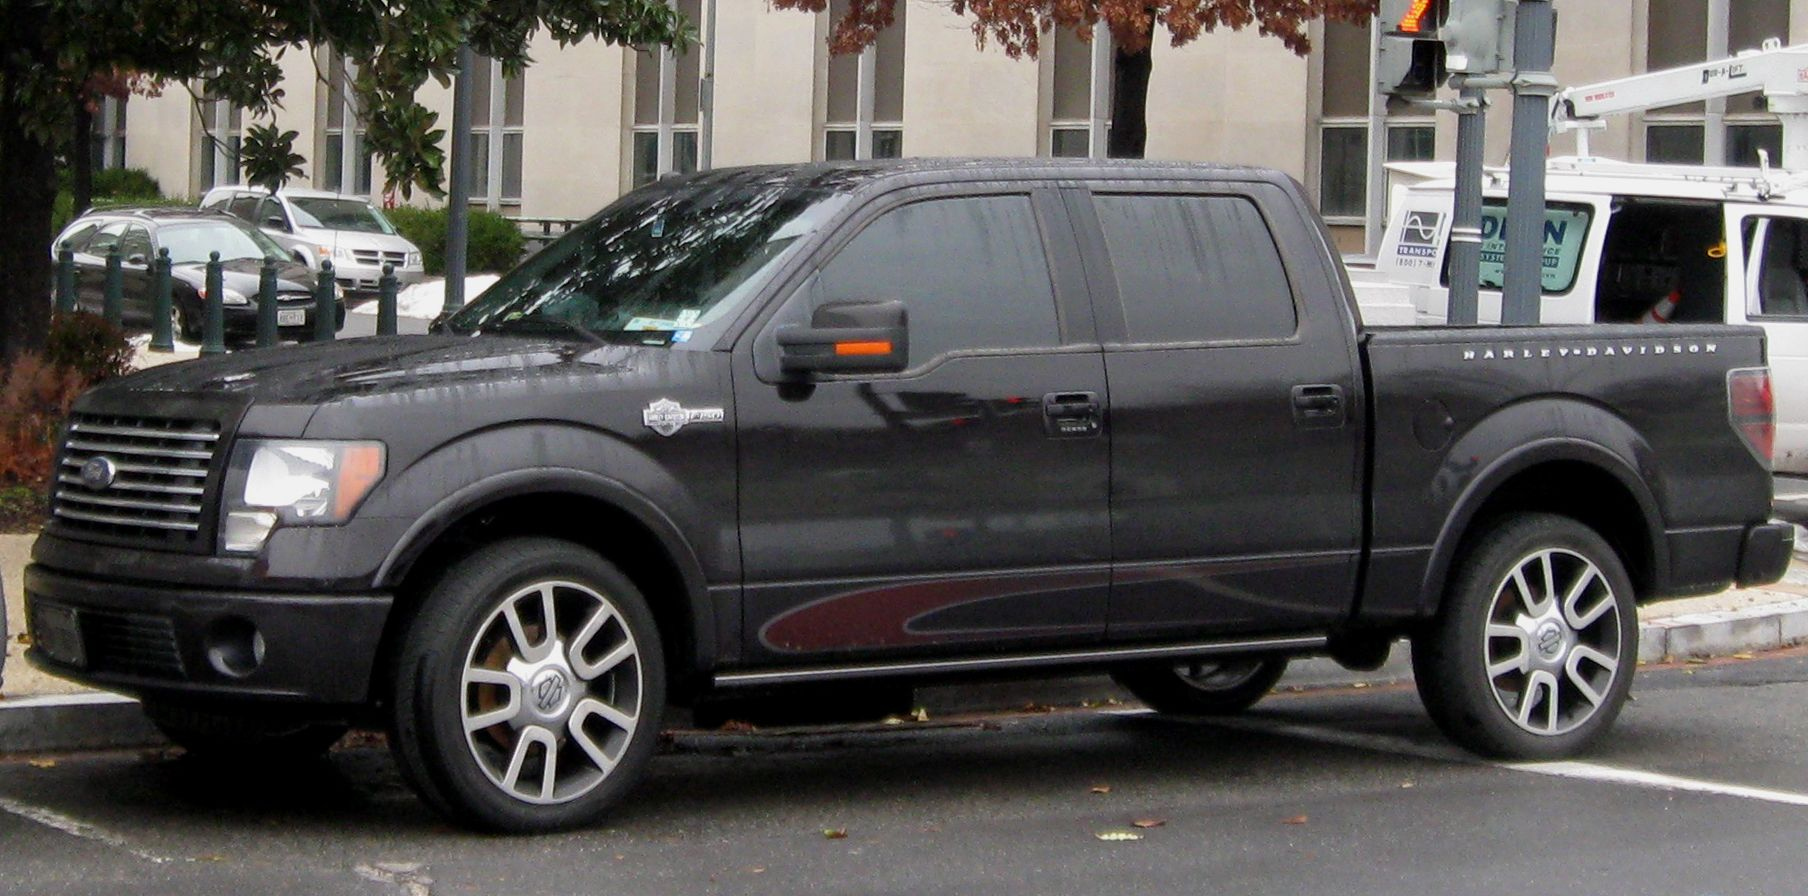 2010 ford f 150 harley davidson ford 2010 f 150 owners manual pdf download 2010 ford 150 parts accessories amazon for 2010 the f 150 is reworked to be  [ 1808 x 896 Pixel ]